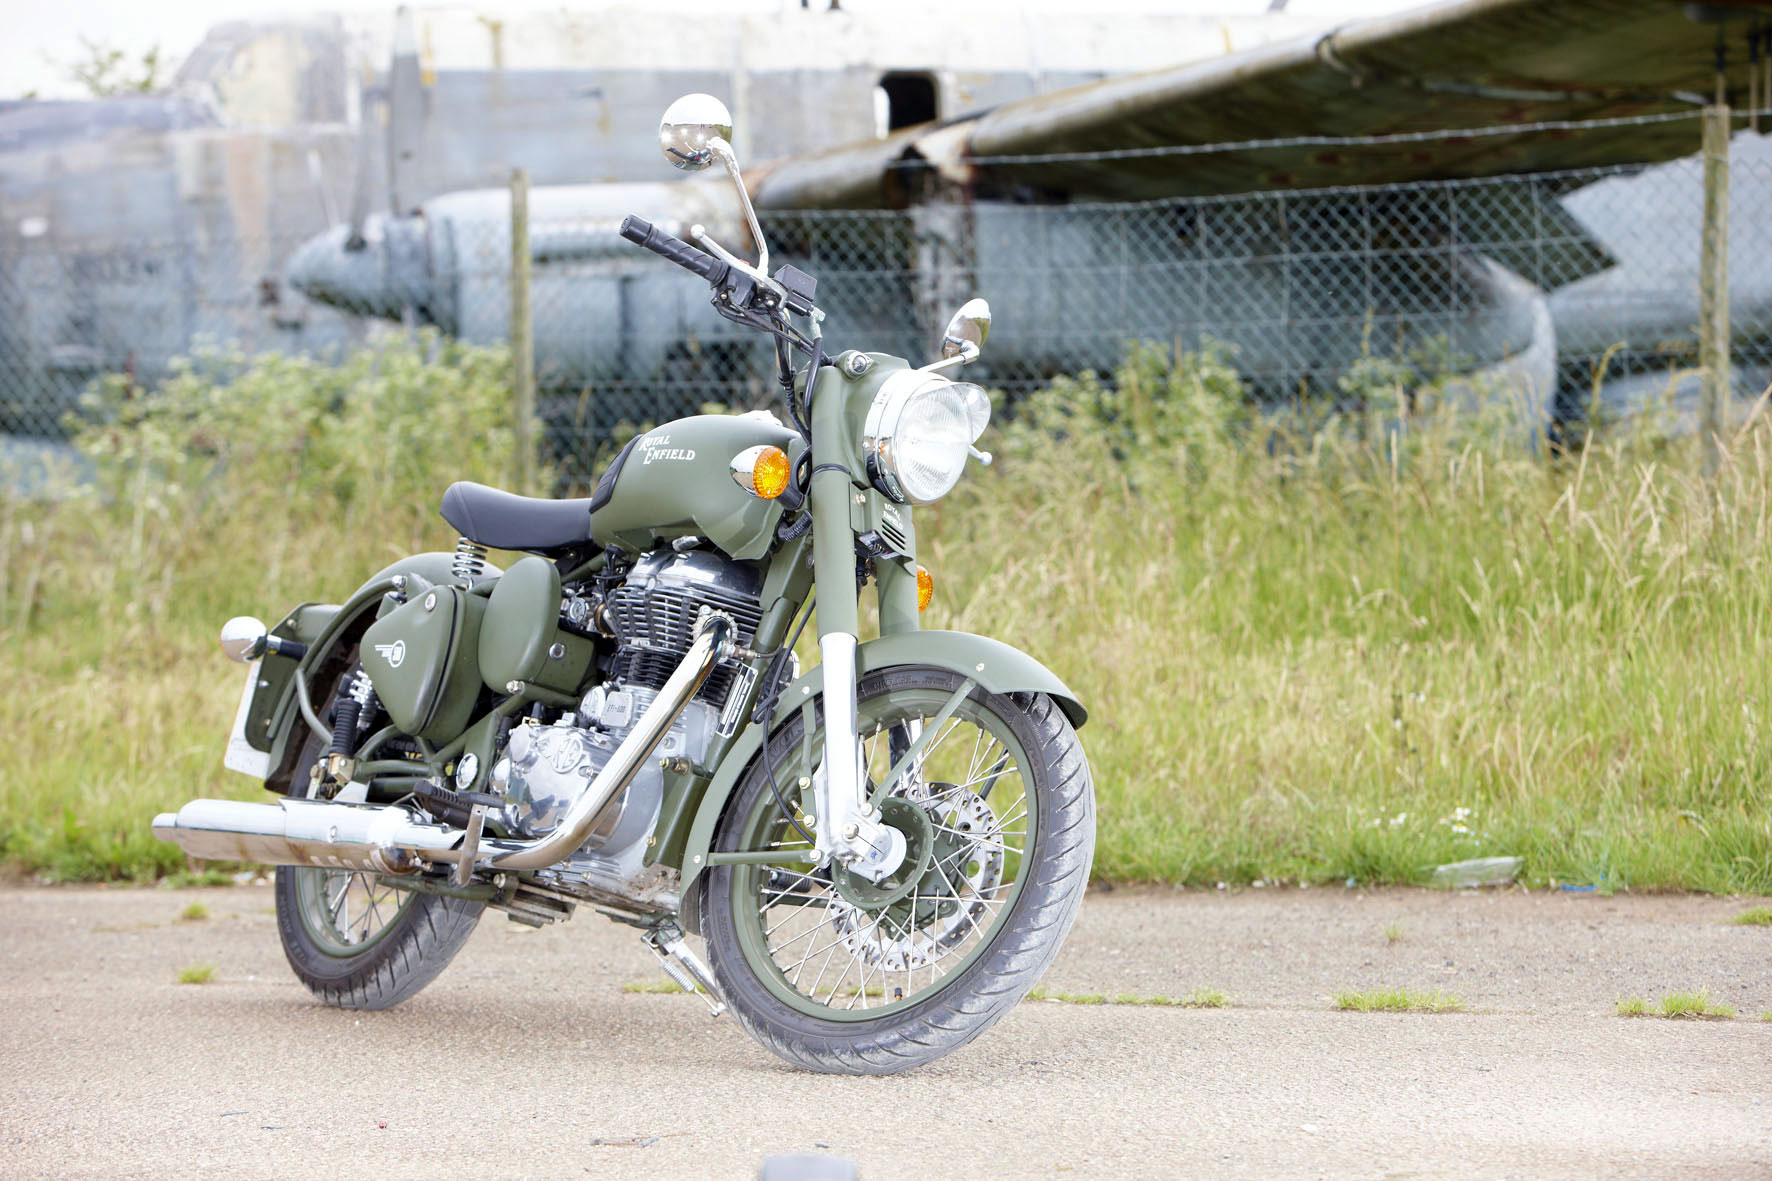 Royal Enfield Bullet 500 Army images #123253